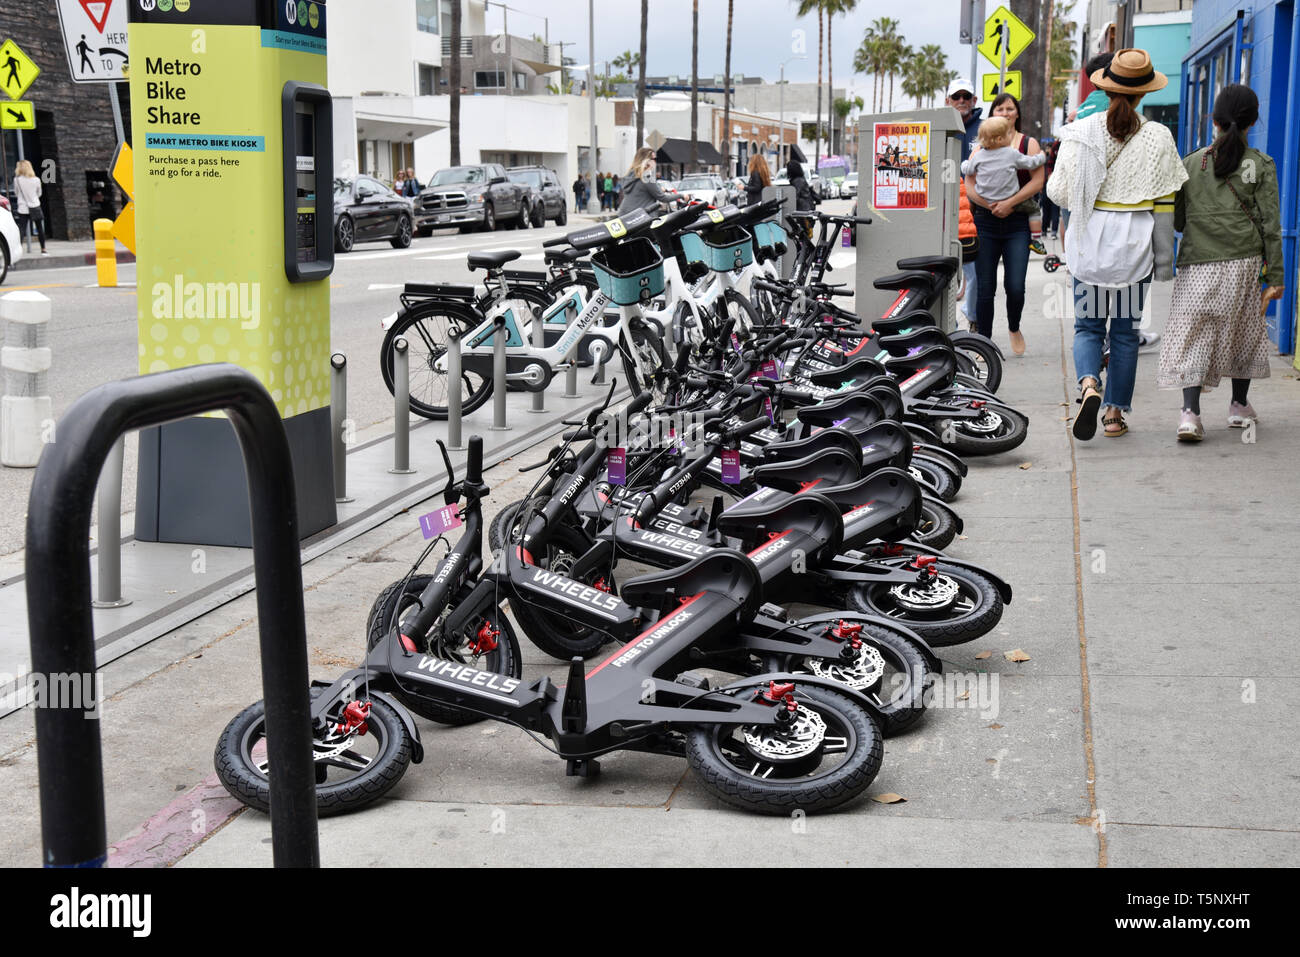 LOS ANGELES, CA/USA  - APRIL 19, 2019:  Electric rental bikes and e-scooters clog the streets and sidewalks on Abbot Kinney Blvd in Venice Beach - Stock Image